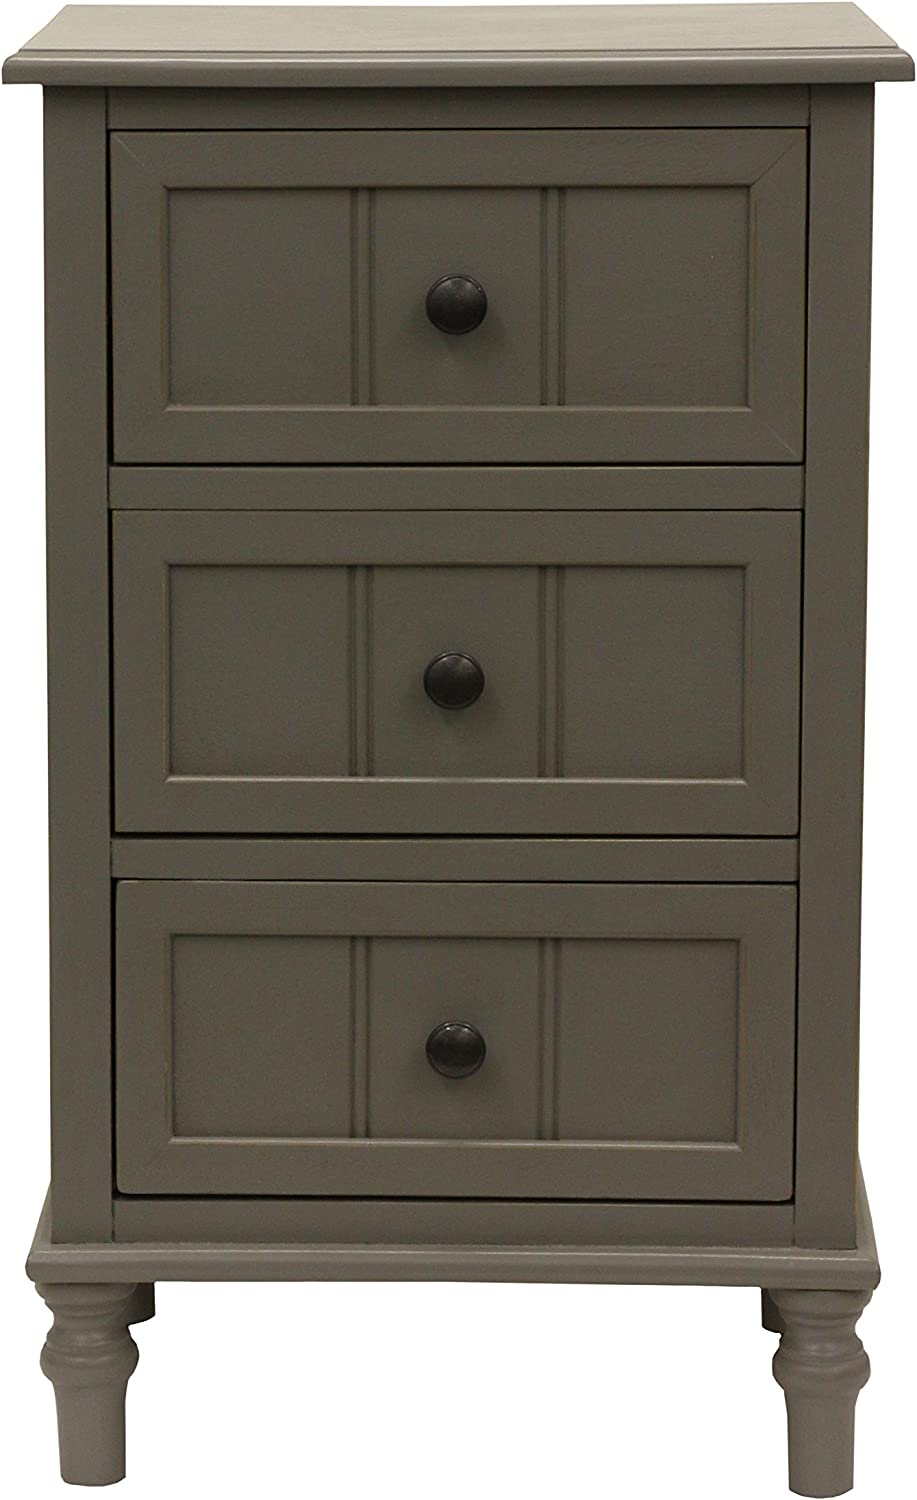 Décor Therapy FR1868 Accent Table, Eased Edge Grey